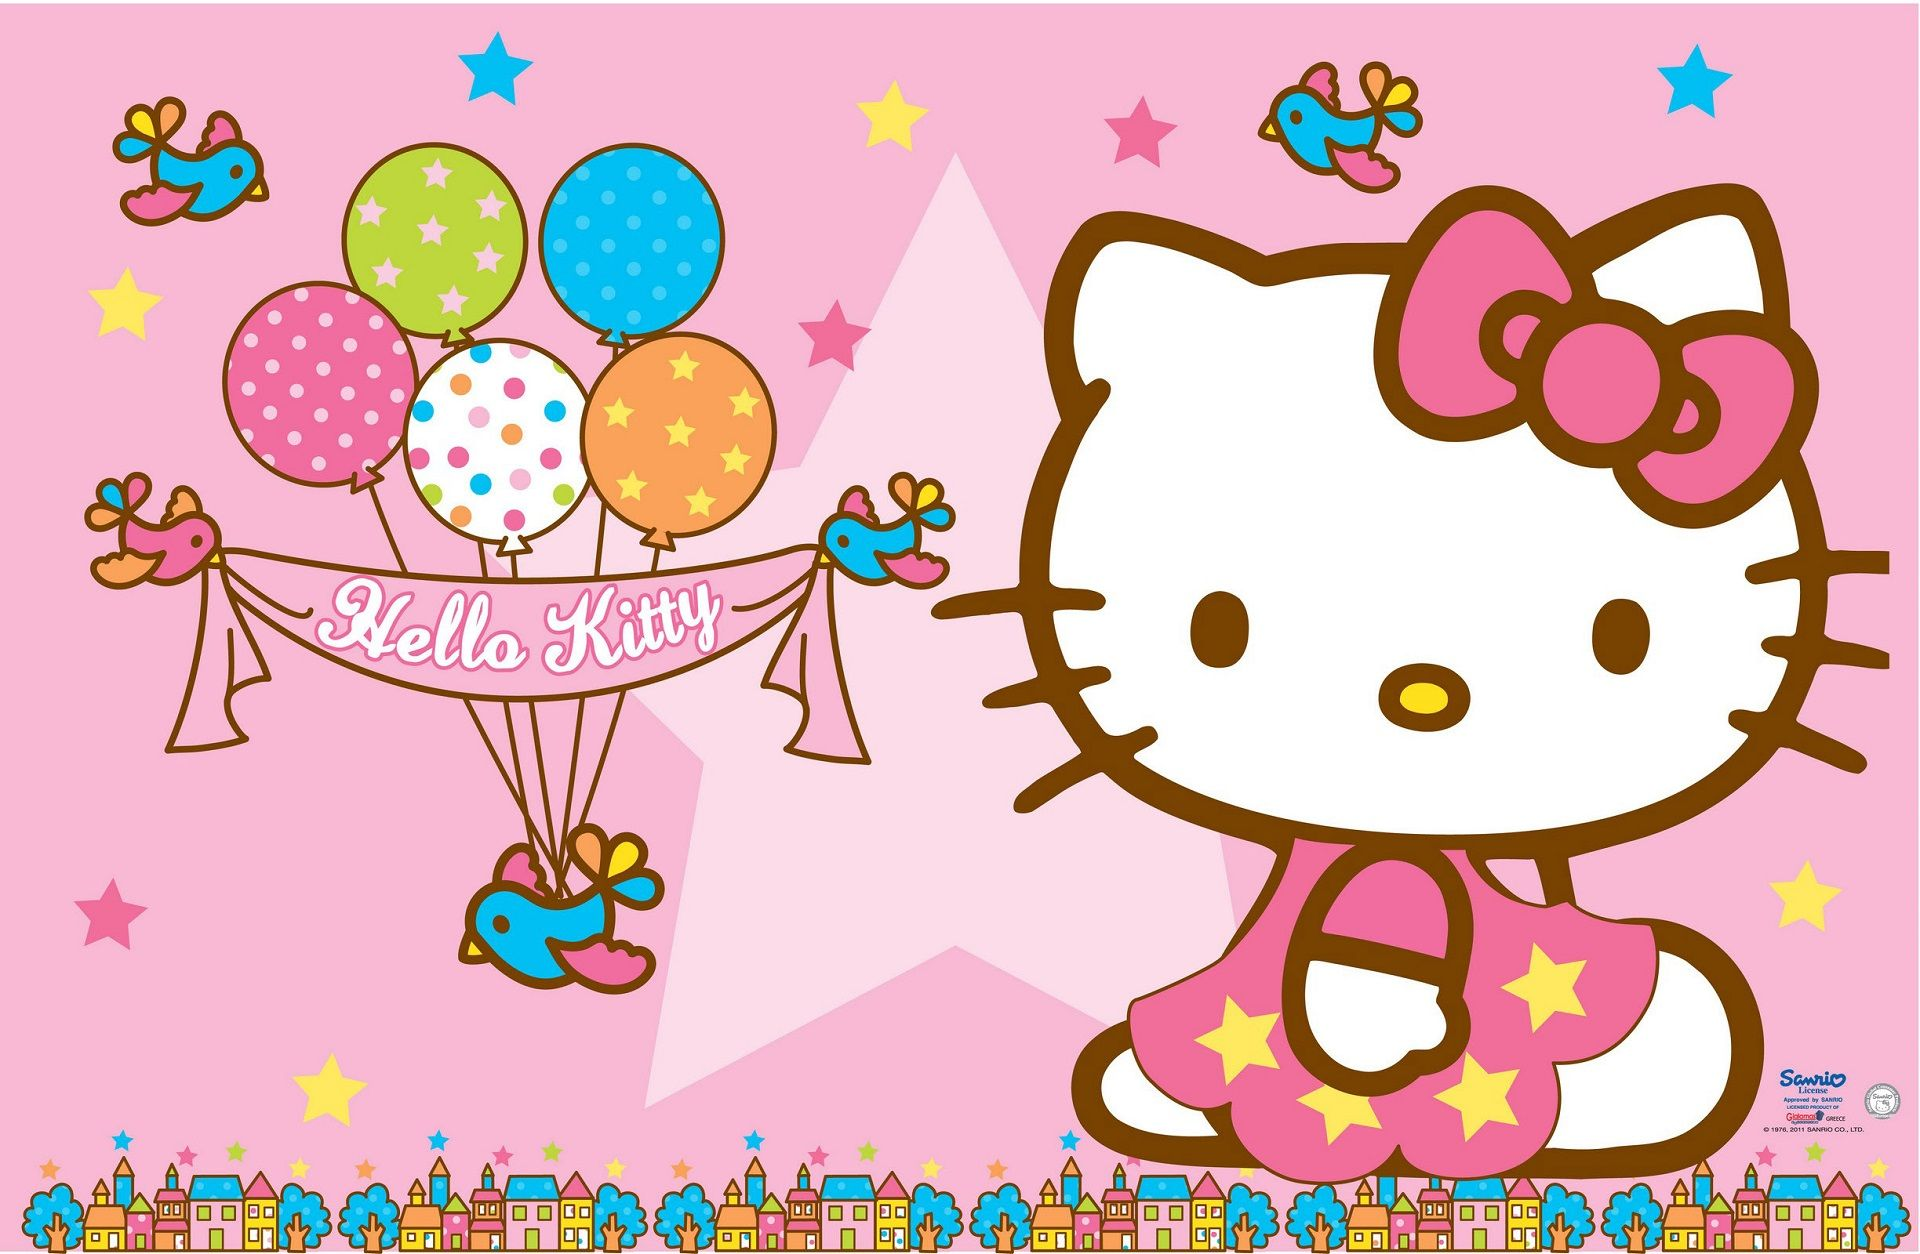 Hello Kitty Wallpapers Collection For Free Download Dengan Gambar